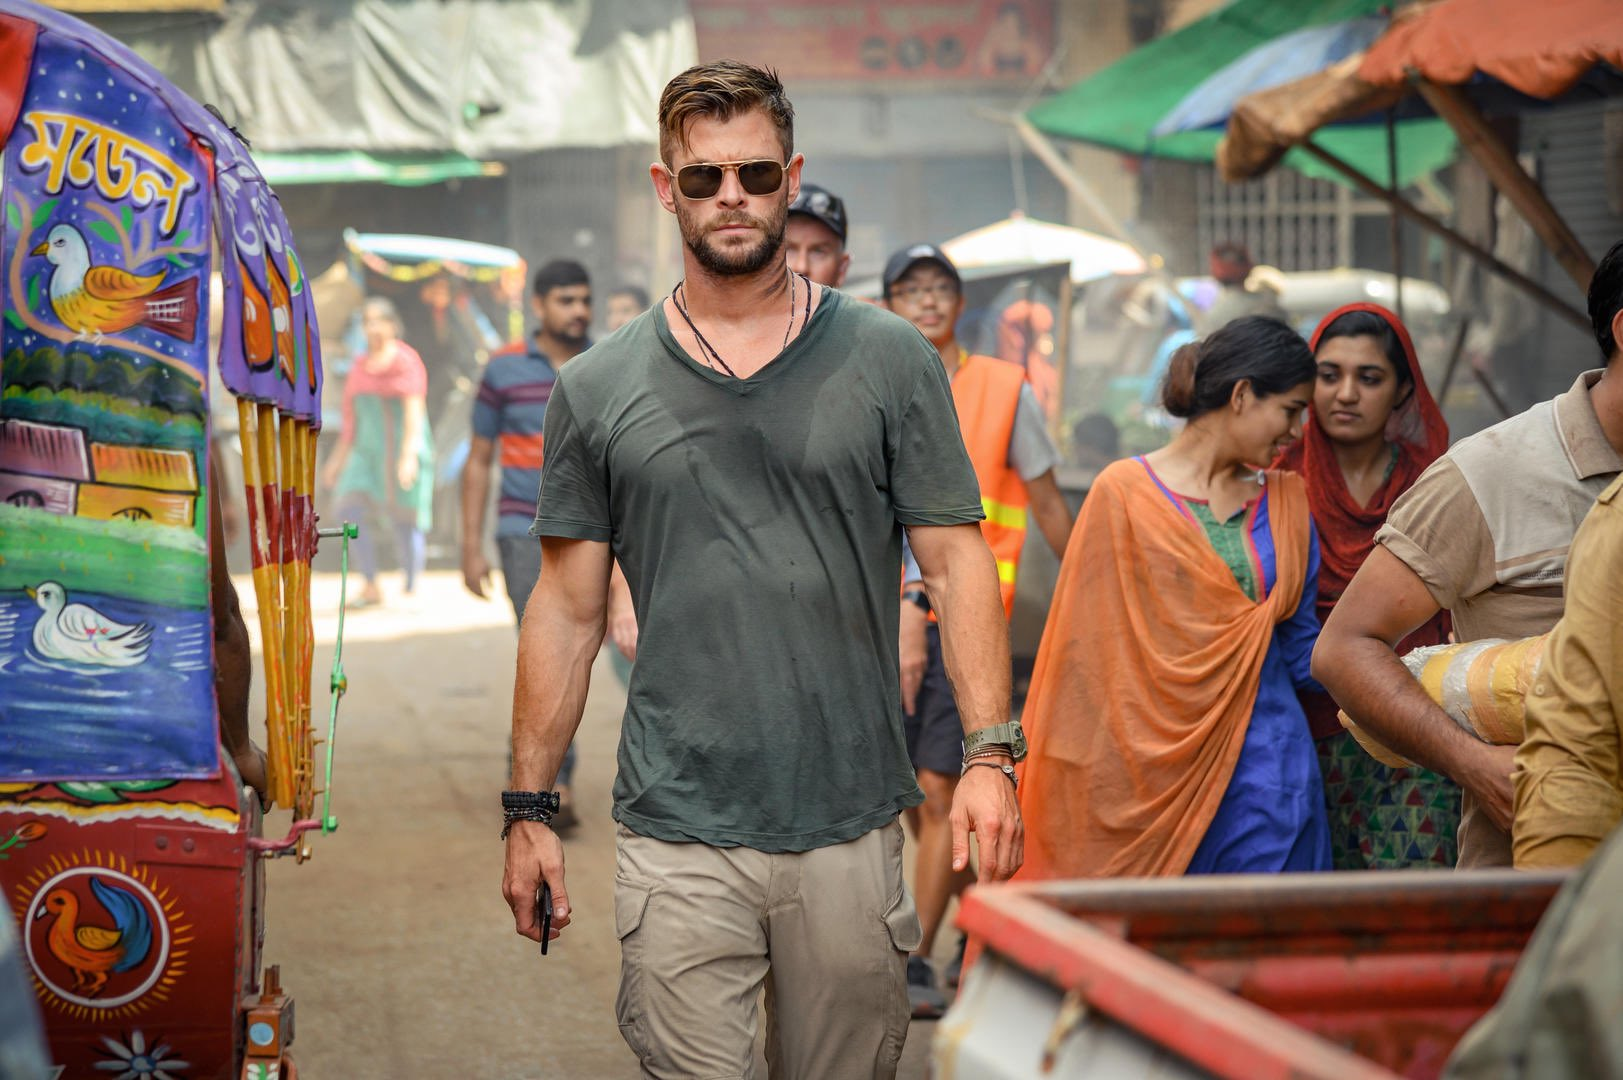 Chris Hemsworth in a still from the film 'Extraction'